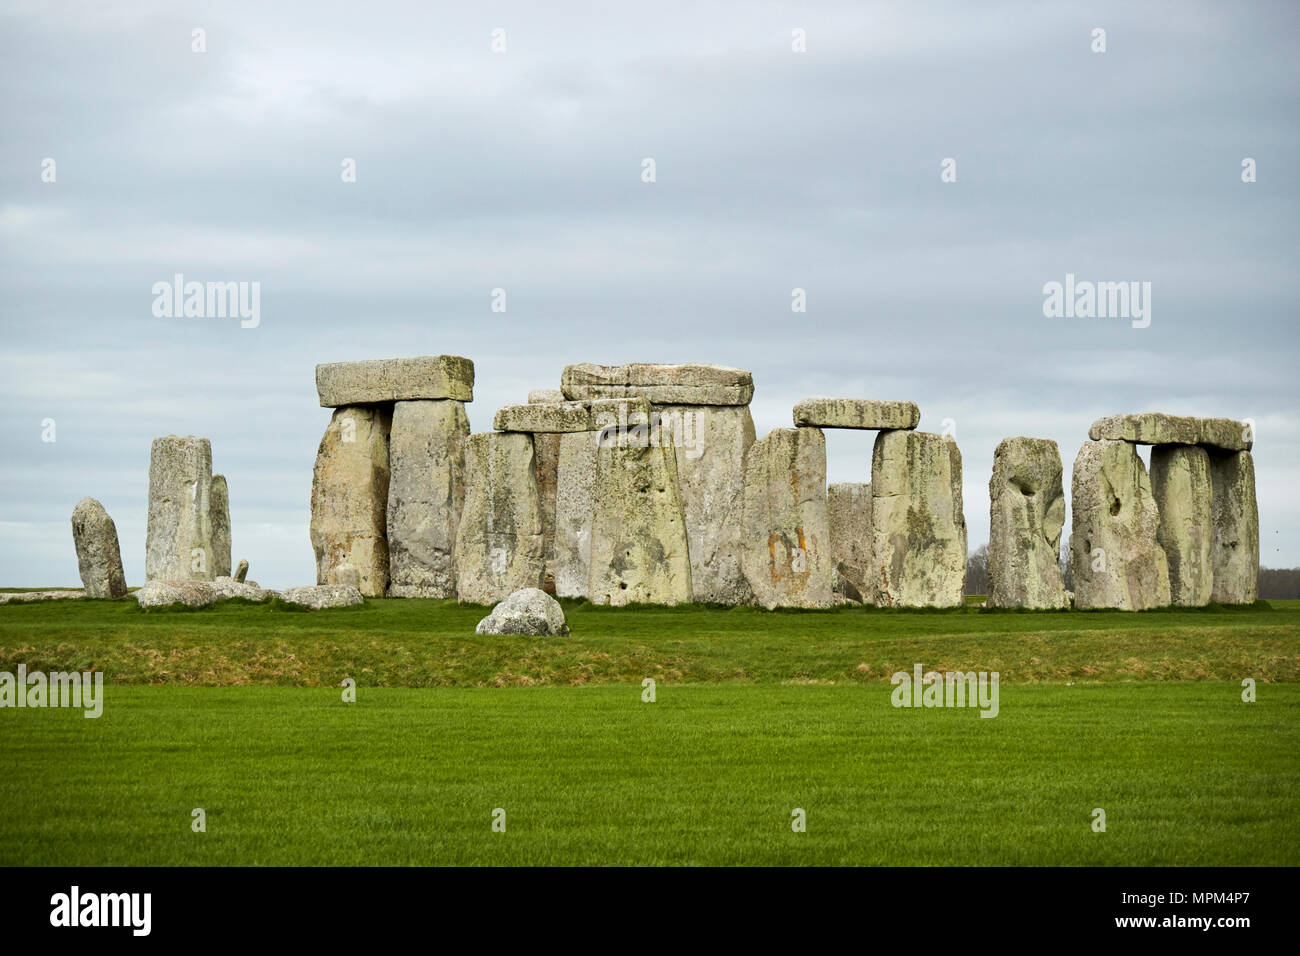 view of circle of sarsen stones with lintel stones stonehenge wiltshire england uk - Stock Image